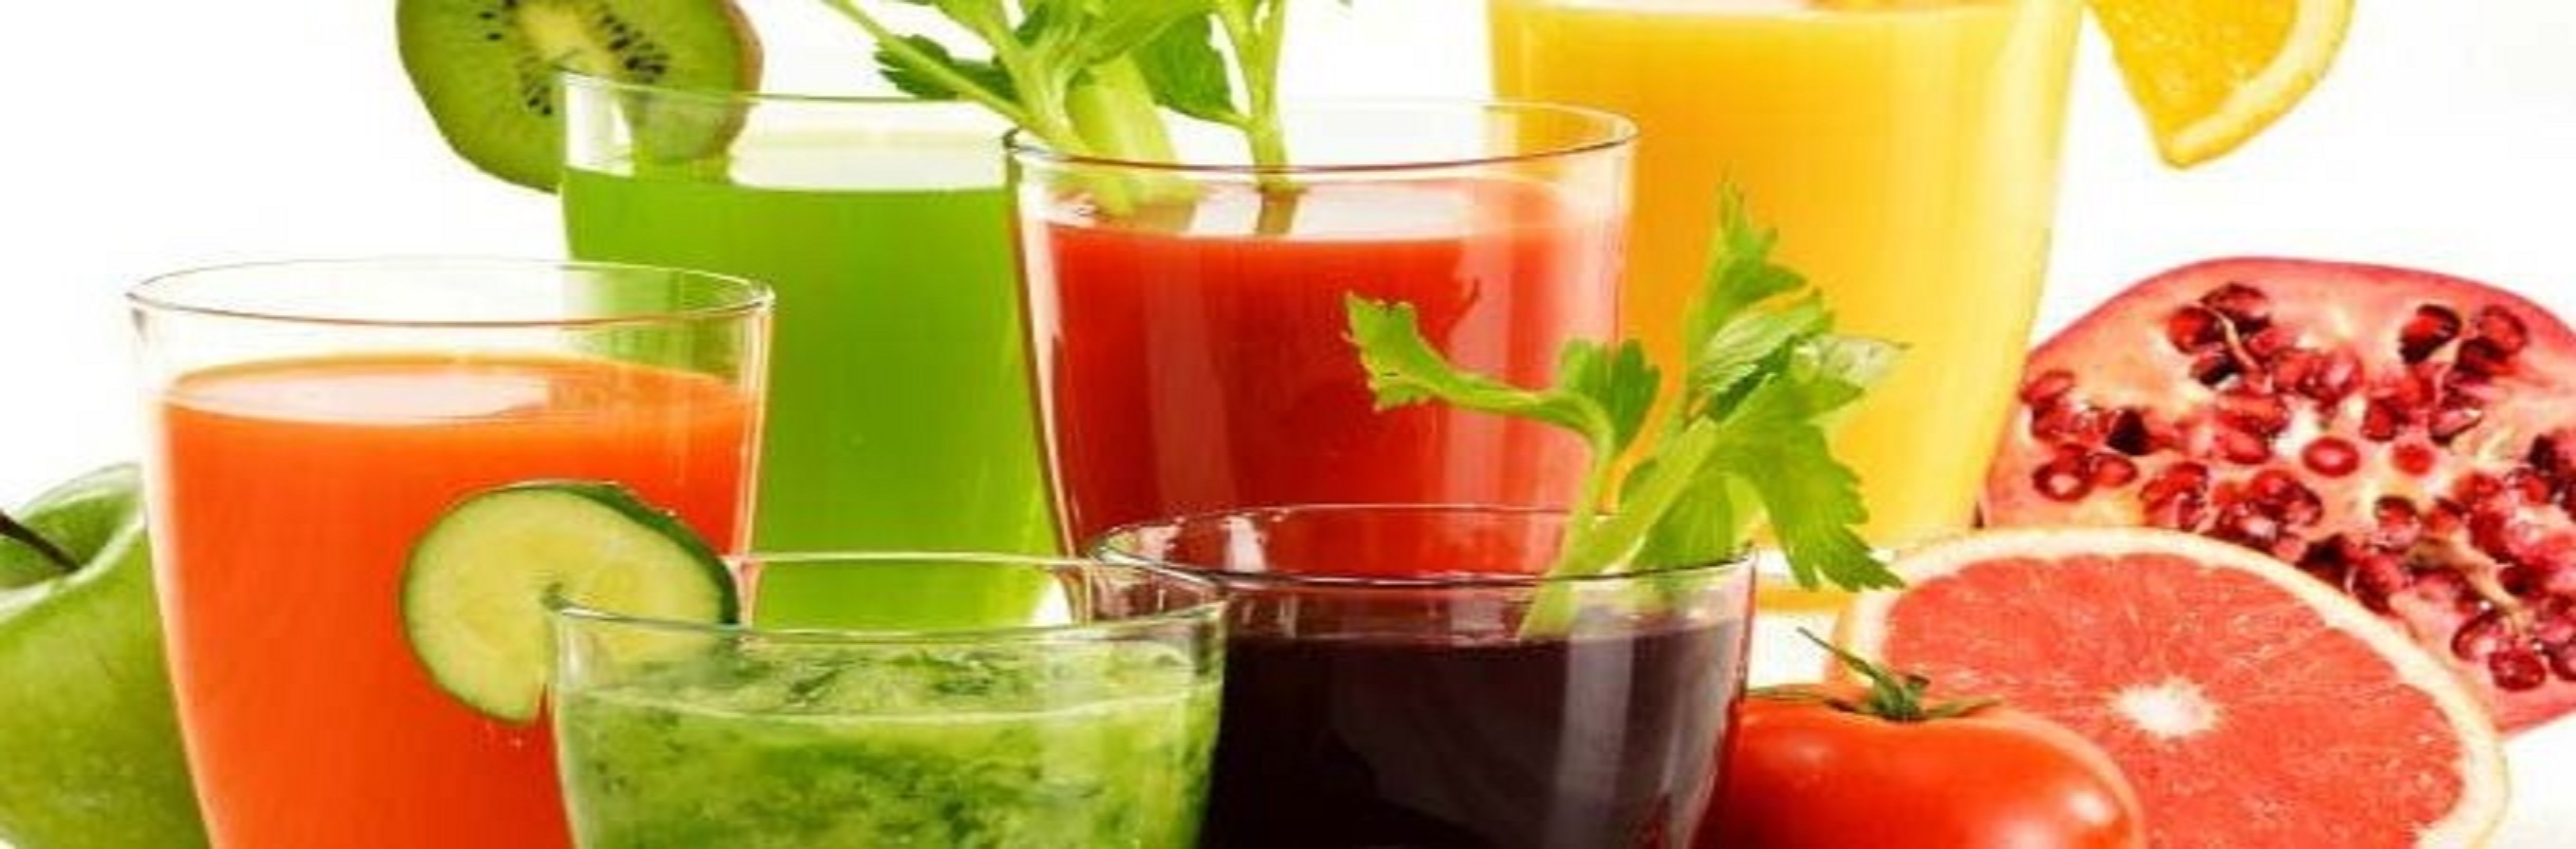 Fruit Juices Market to See Huge Growth by 2025: Key Players Del Monte Foods, Ocean Spray Cranberries, Suntory Holdings